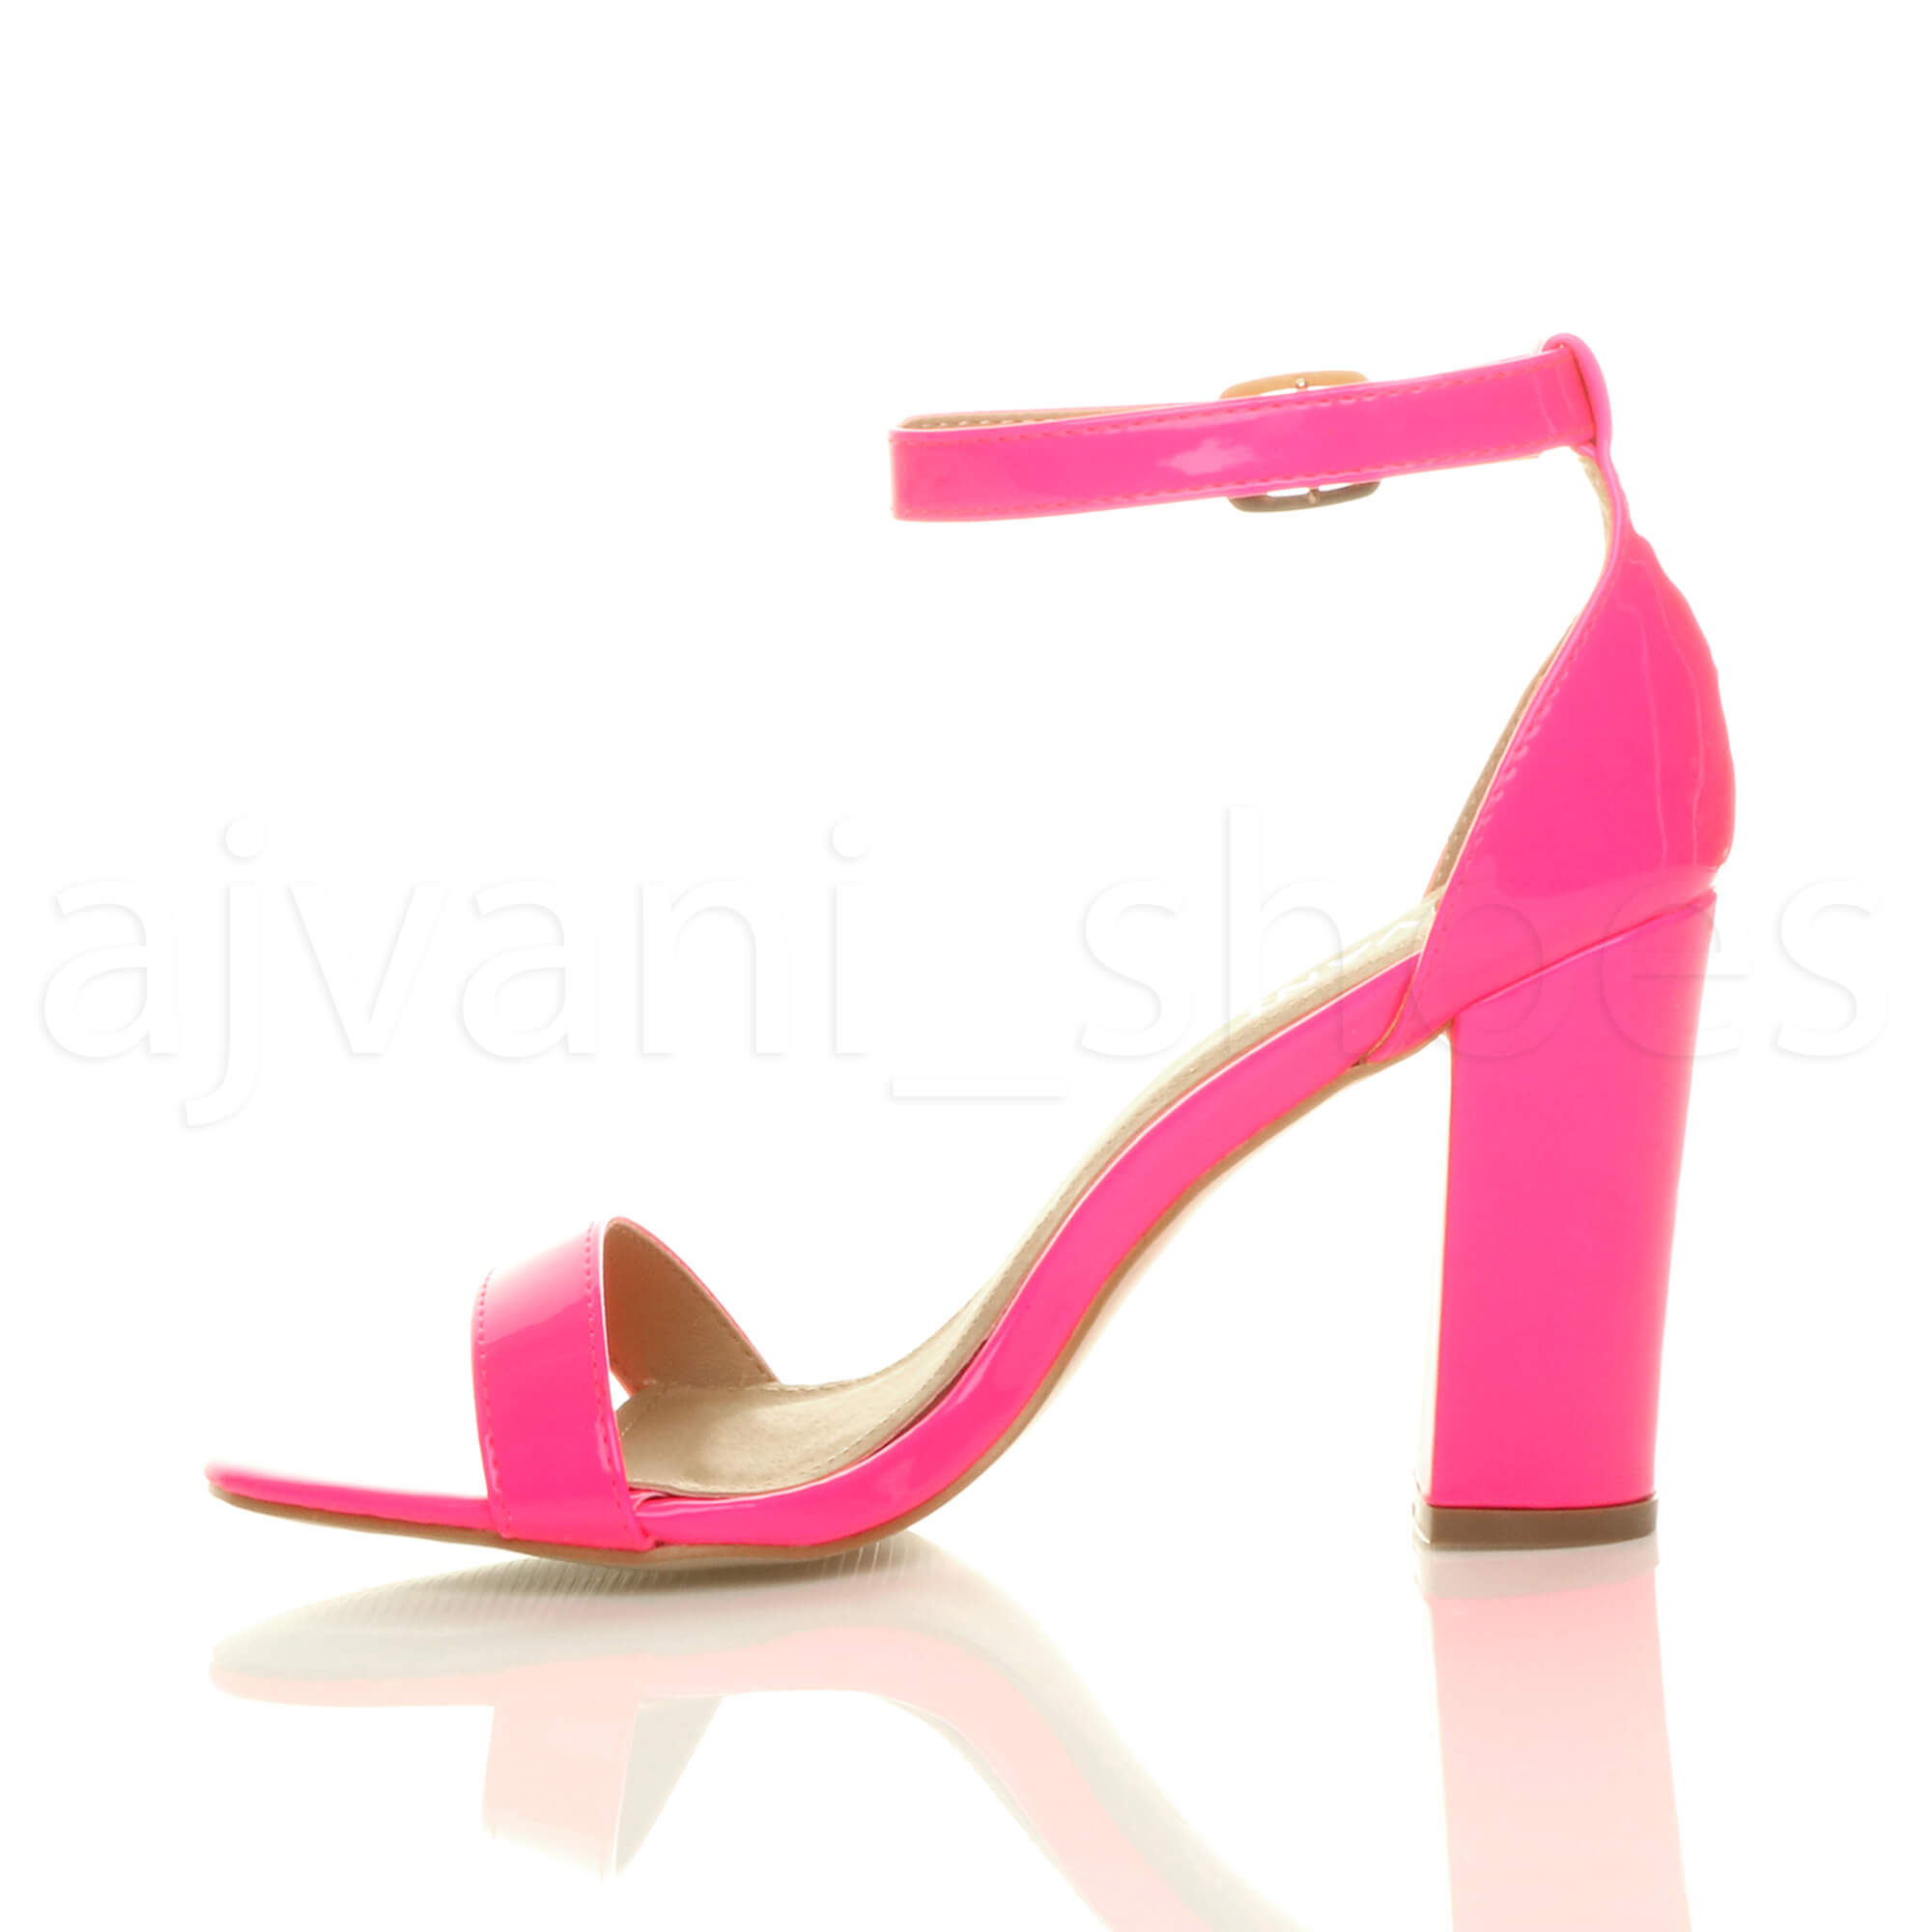 WOMENS-LADIES-BLOCK-HIGH-HEEL-ANKLE-STRAP-PEEP-TOE-STRAPPY-SANDALS-SHOES-SIZE thumbnail 90